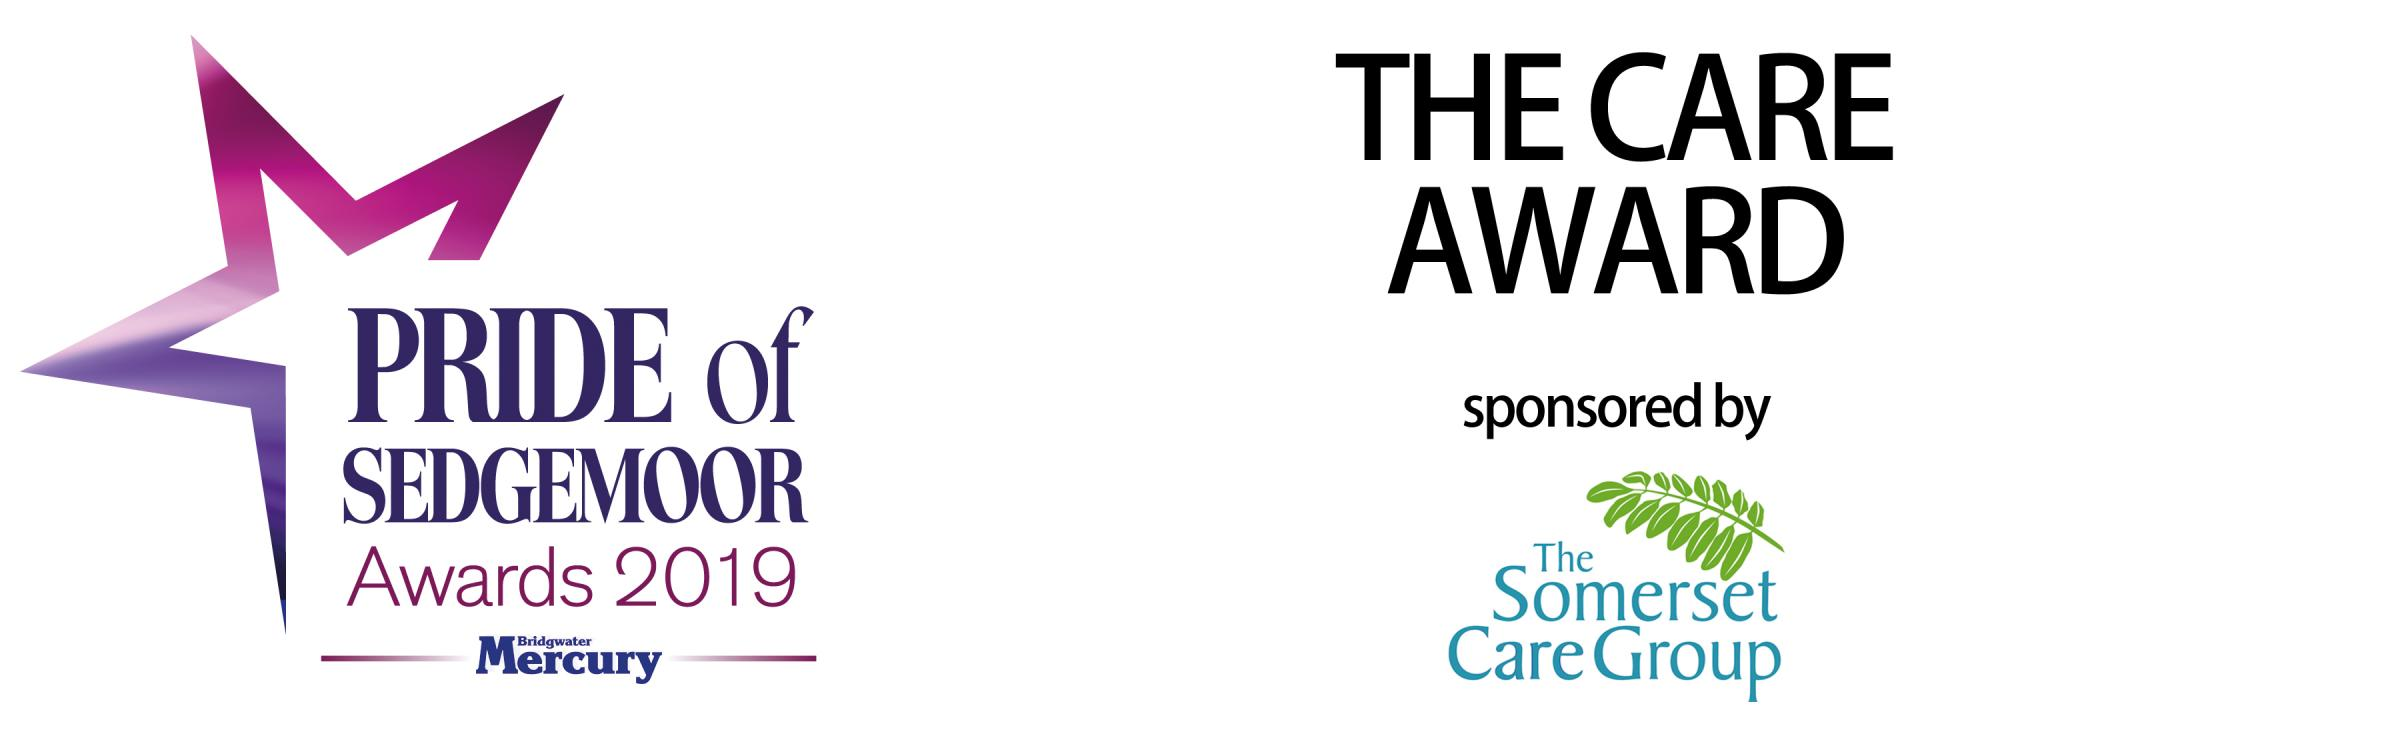 Bridgwater Mercury: Pride of Sedgemoor Awards 2019: Care Award